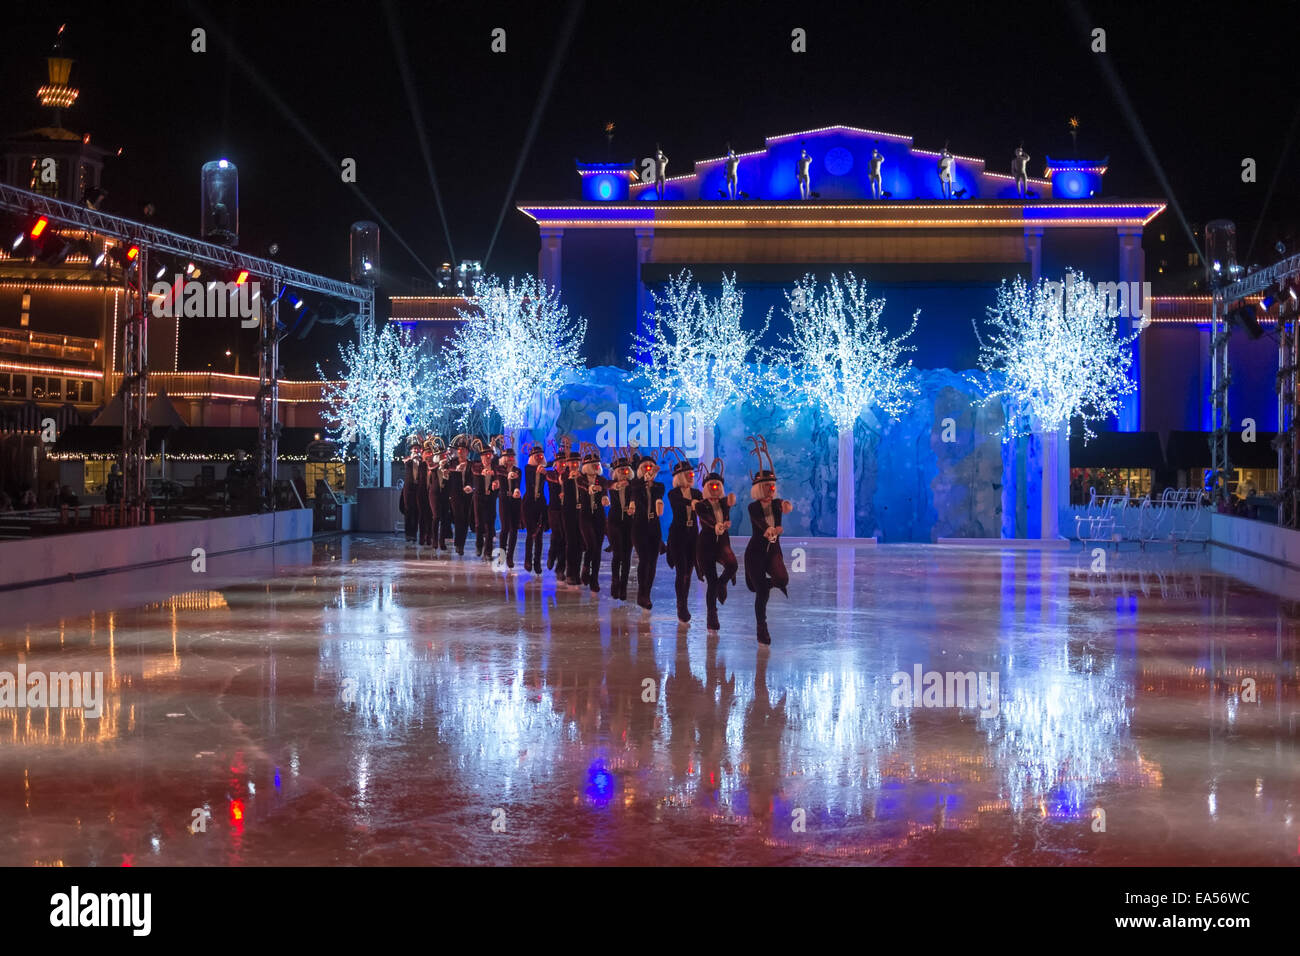 The ice show at the ice skating rink during Christmas market at Liseberg in  Gothenburg, Sweden. - Stock Image